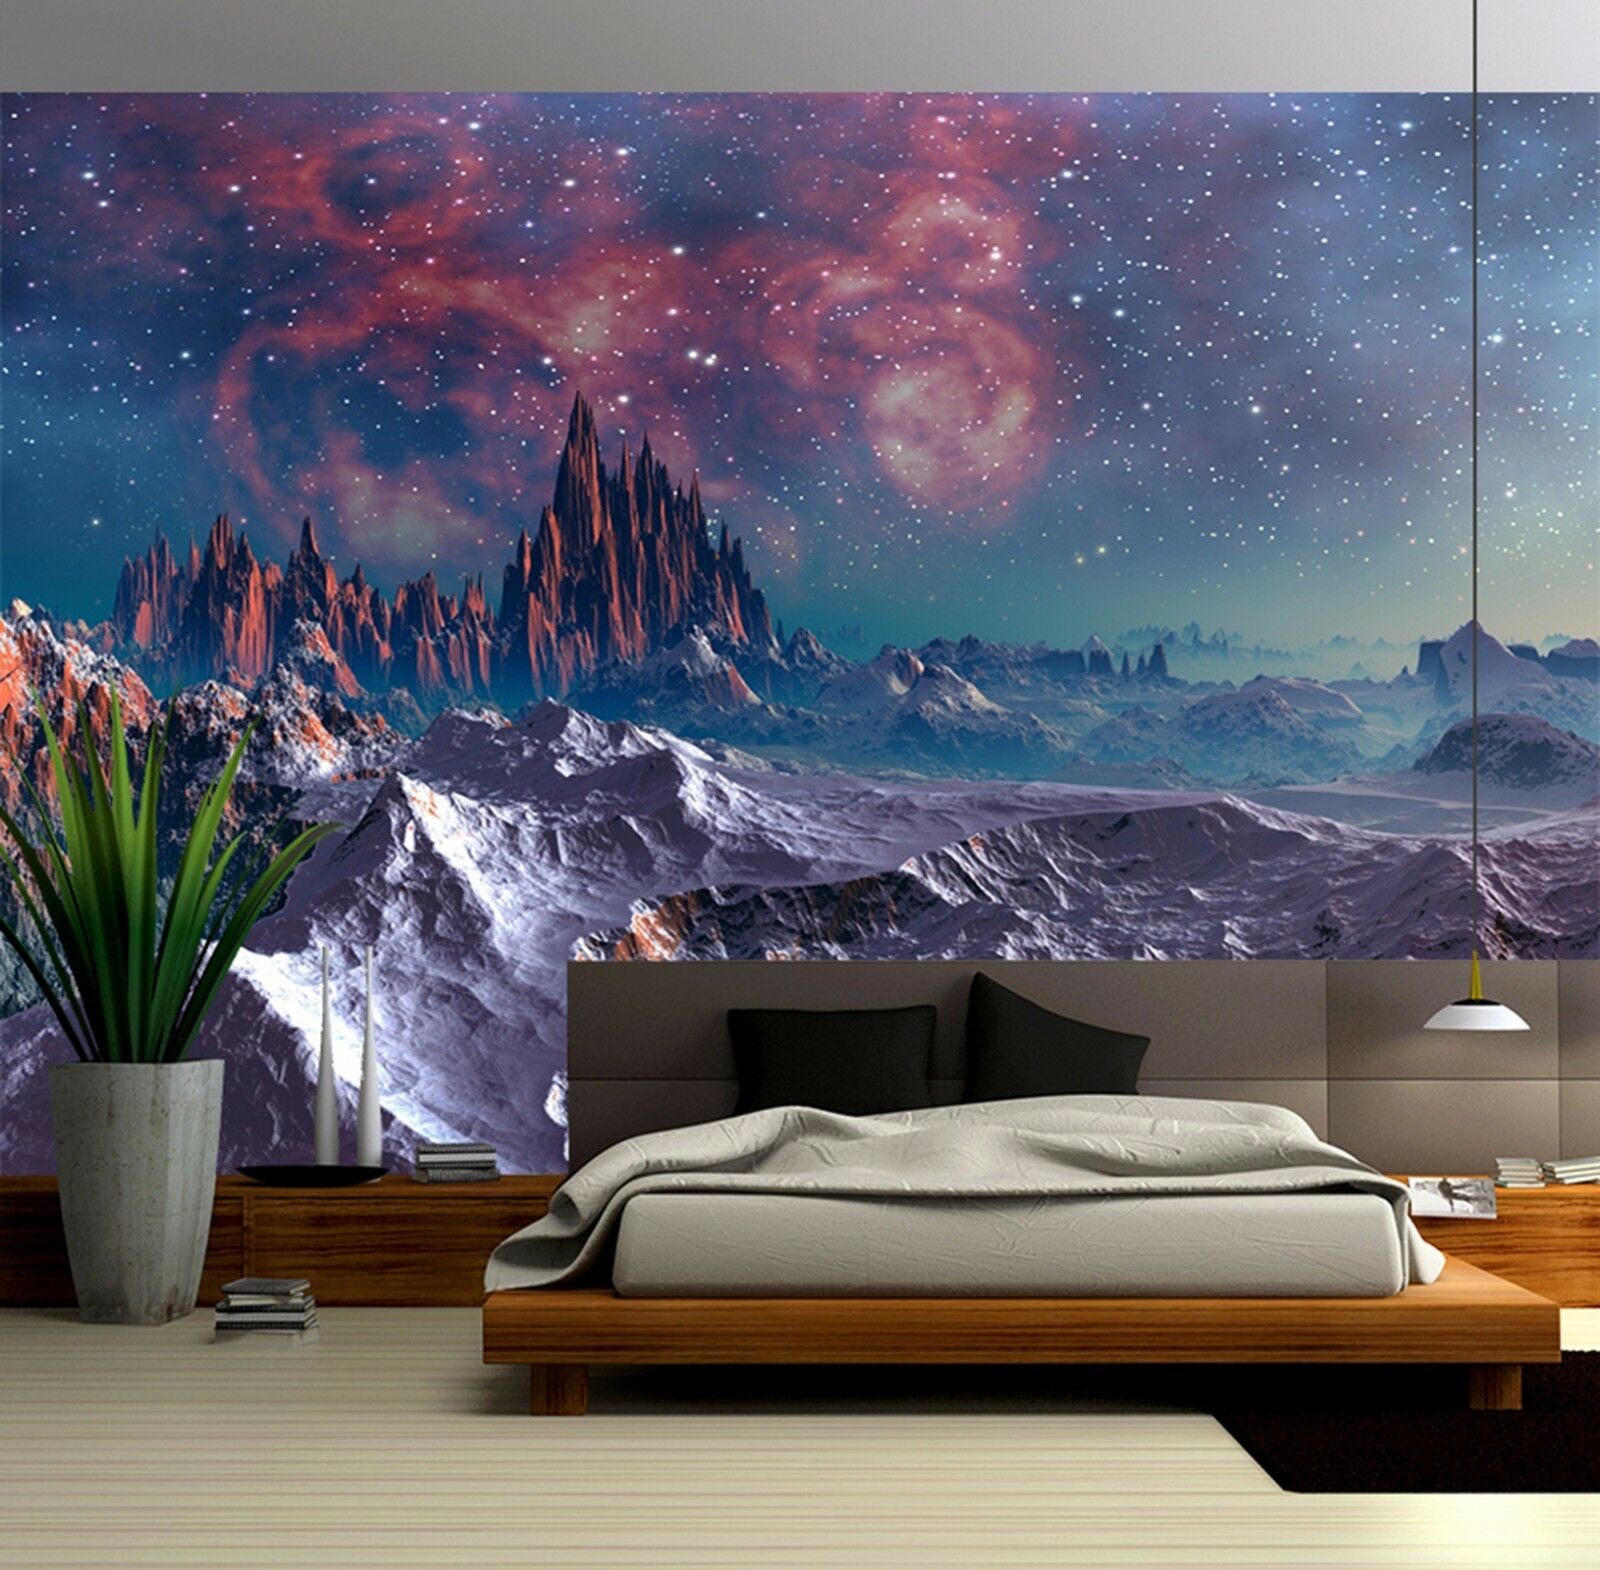 3D Star volcano 2433 Wall Paper Wall Print Decal Wall Deco Indoor Wall Murals